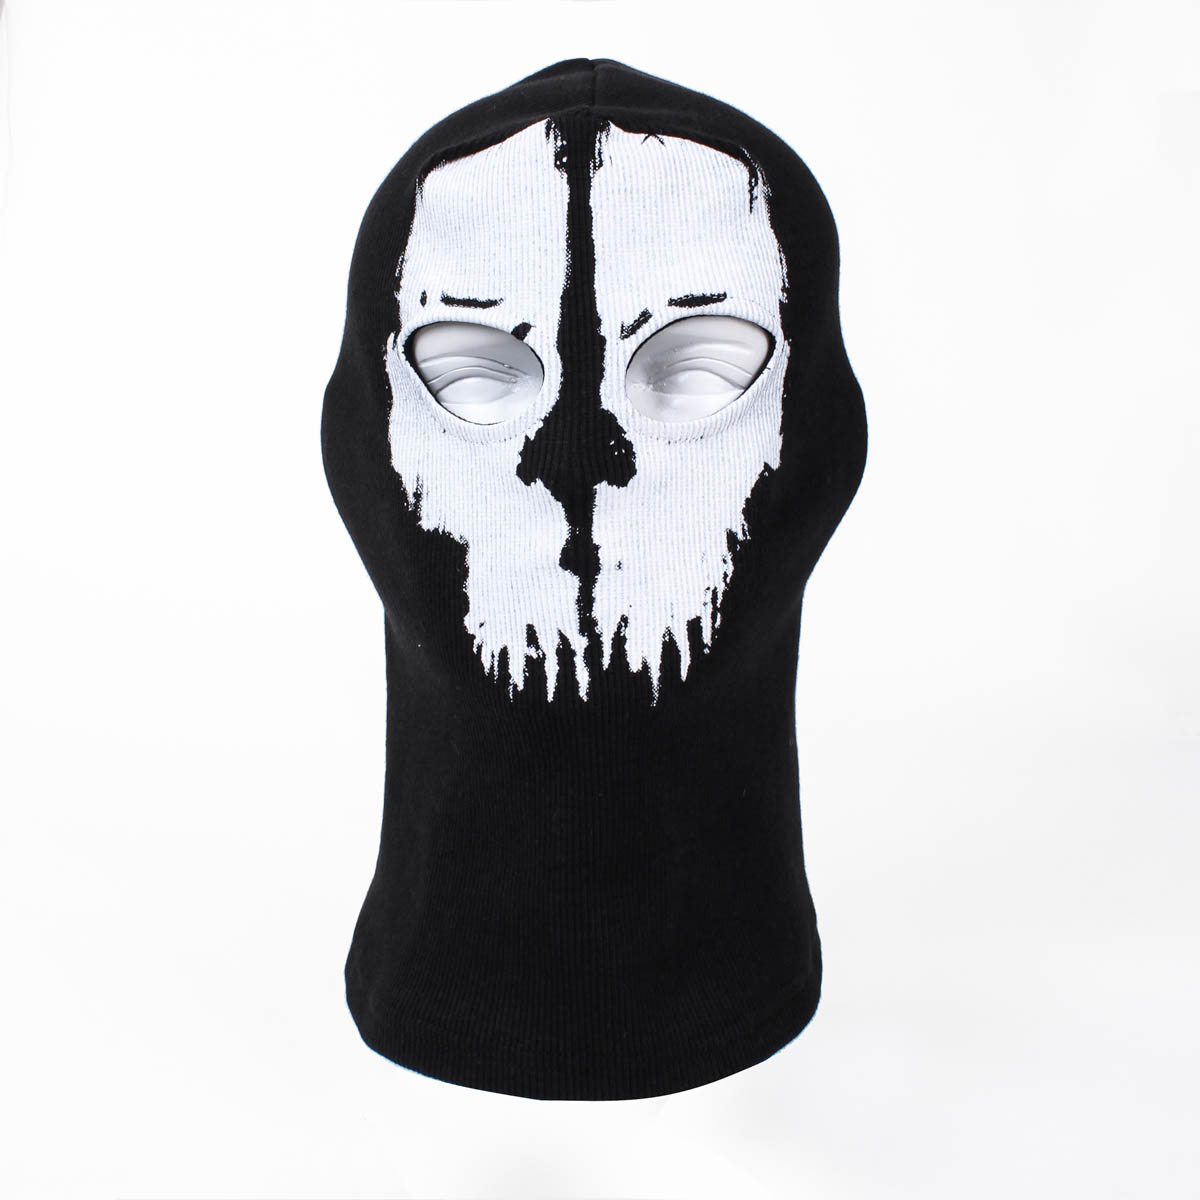 Compare Prices on Ghost Mask- Online Shopping/Buy Low Price Ghost ...